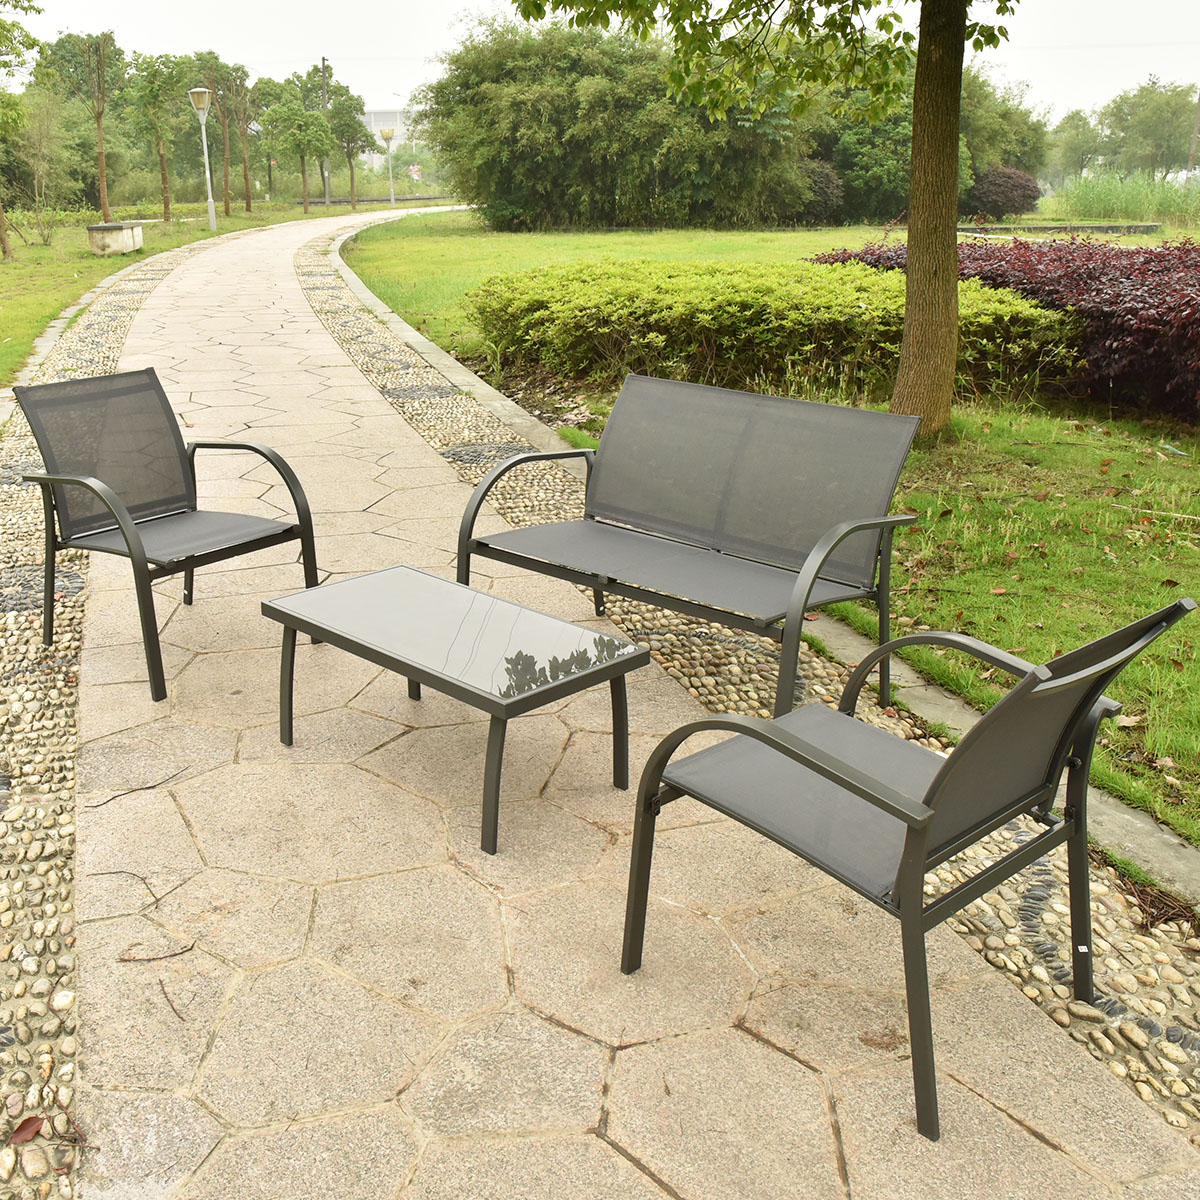 Costway 4PCS Patio Garden Furniture Set Steel Frame Outdoor Lawn Sofa Chairs  Table Gray   Walmart.com